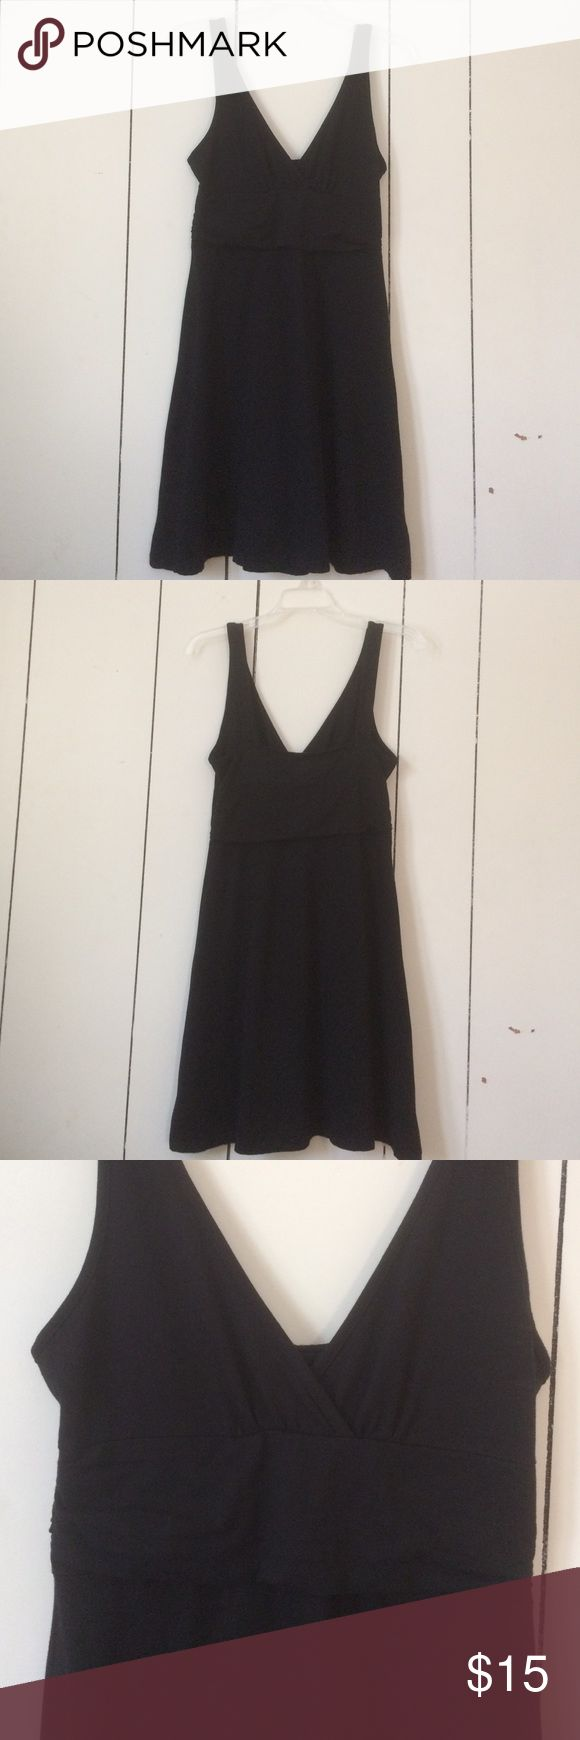 """knee length black dress sleeveless black dress. hits just above the knee on me (5'6""""). fabric crosses over at the bust. bra or no bra works. Patagonia Dresses"""